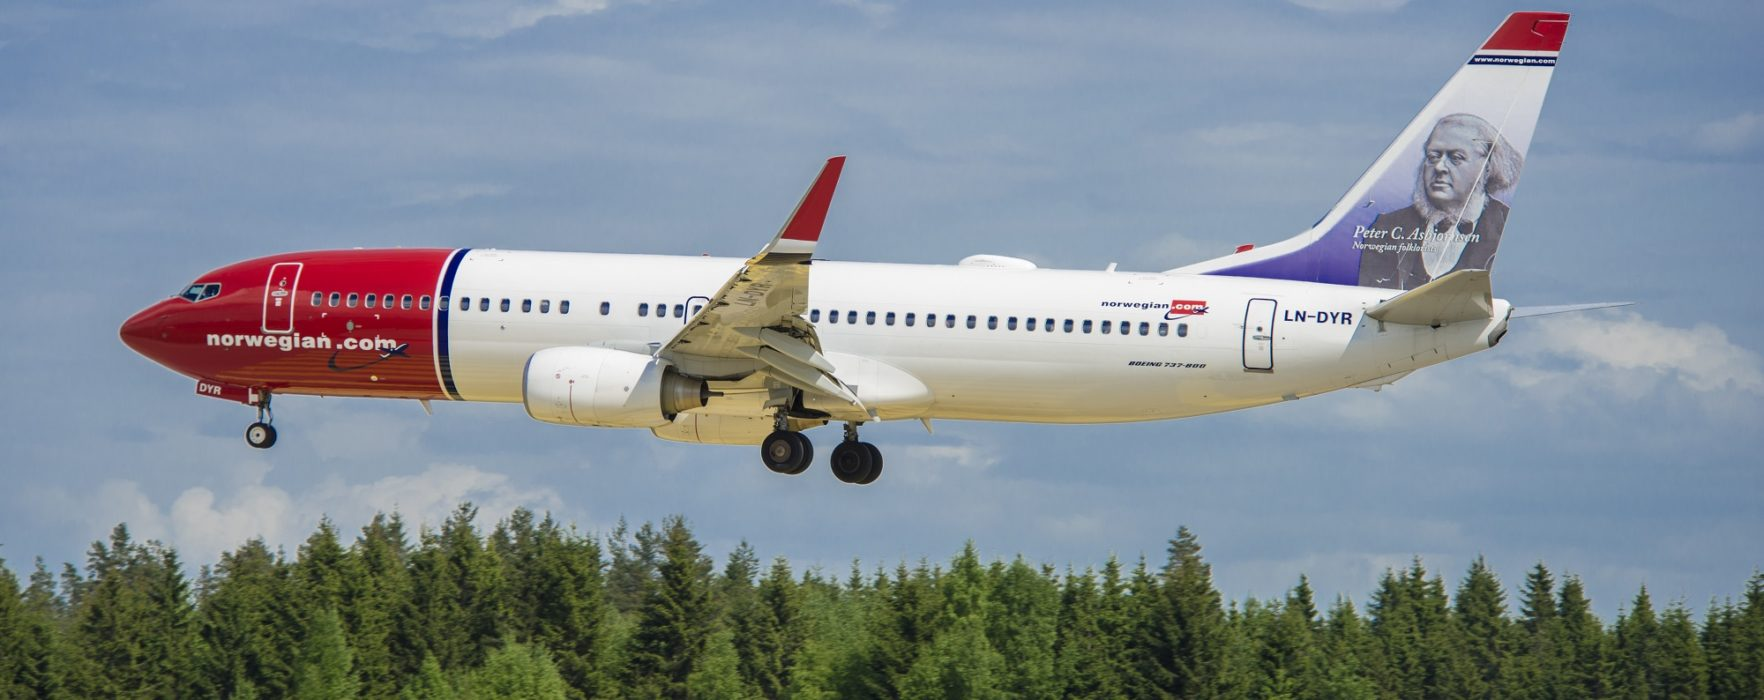 Norwegian announces new route from Manchester to Bergen